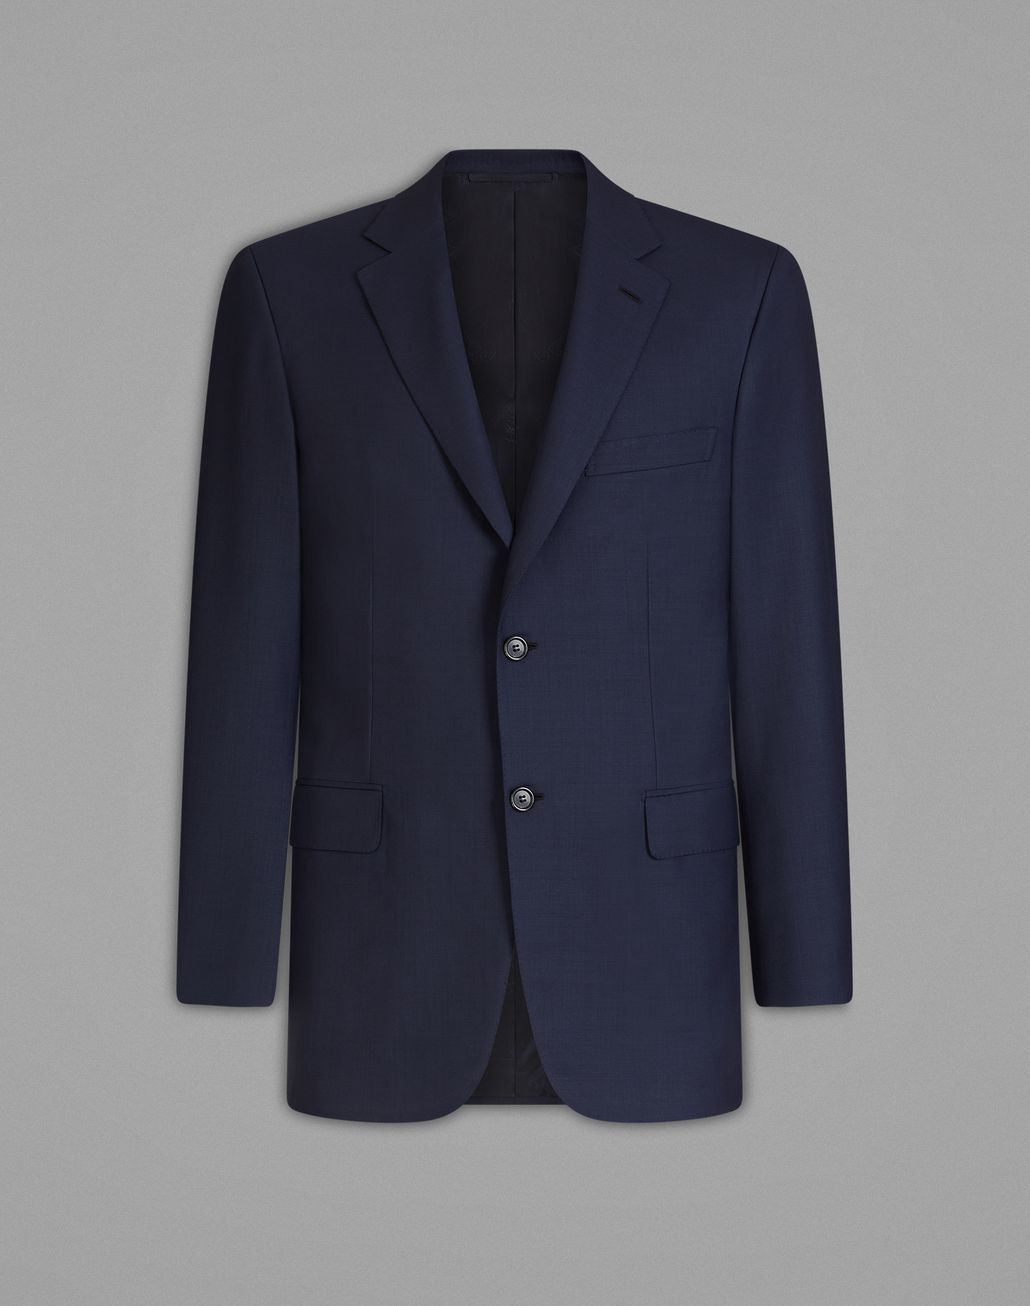 BRIONI Marineblaue Essential Jacke Ravello  Jacken [*** pickupInStoreShippingNotGuaranteed_info ***] f